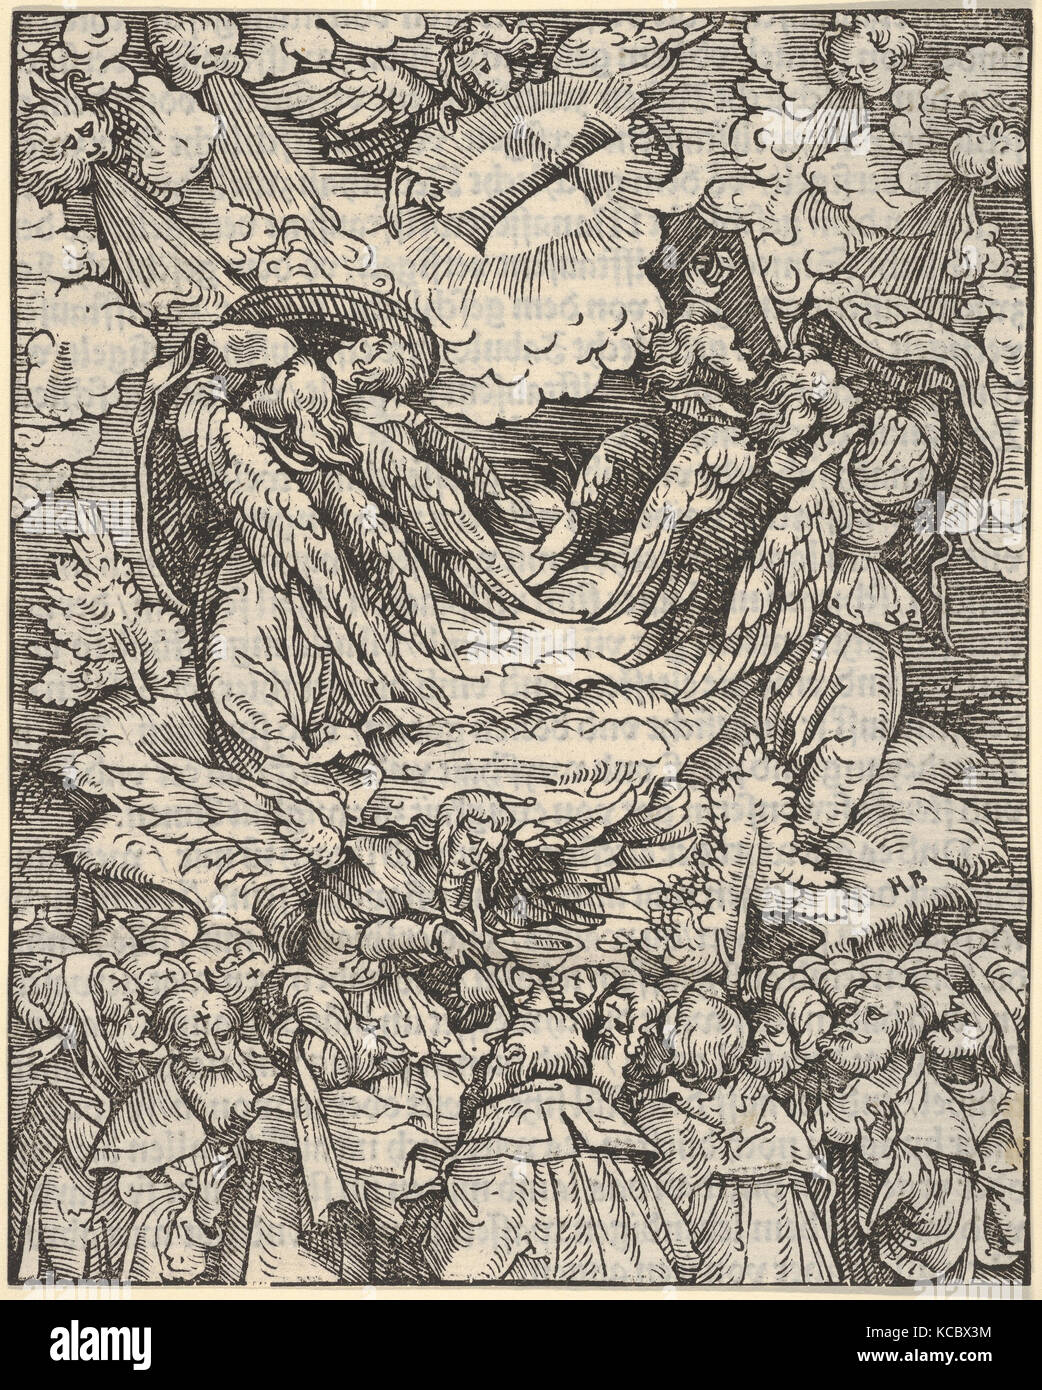 Designation of the Elect, from The Apocalypse, Hans Burgkmair, 1523–24 - Stock Image